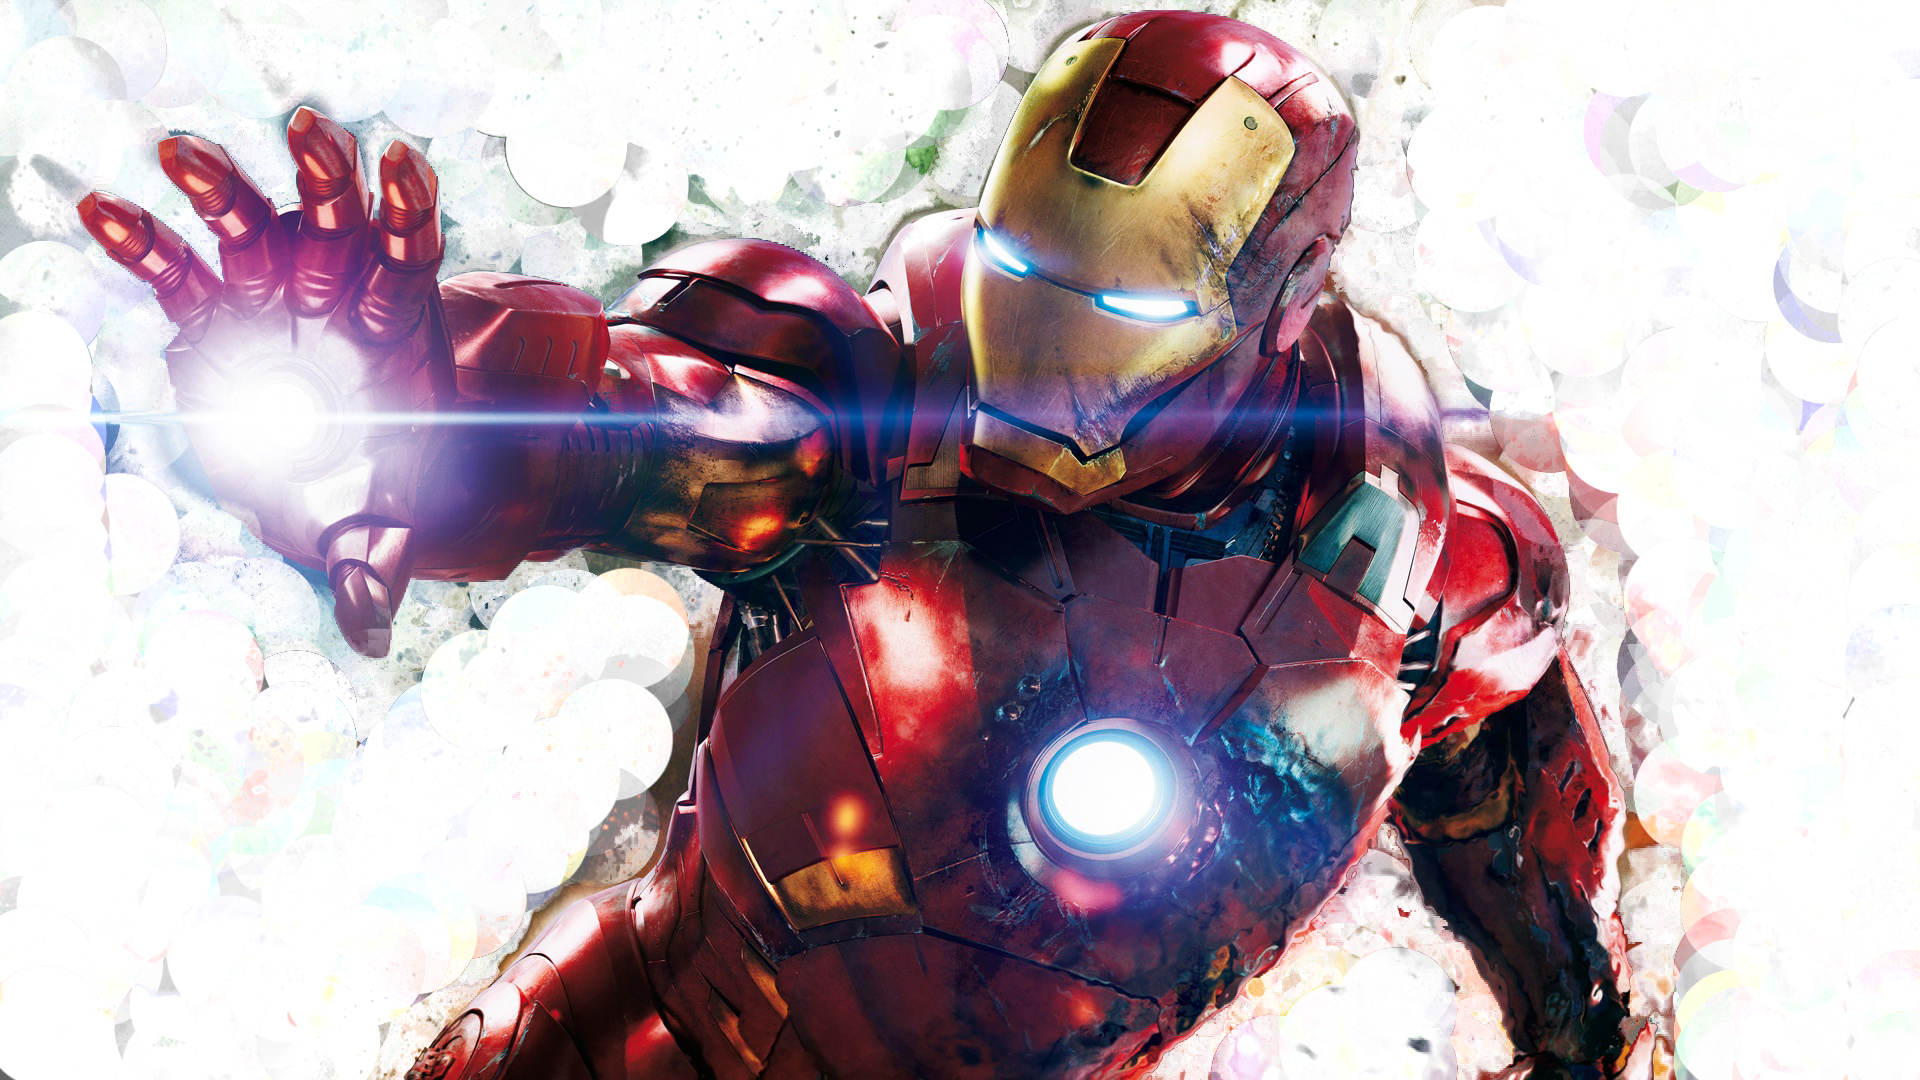 Expressionist Iron Man Design Wallpaper by Axiom Apps on